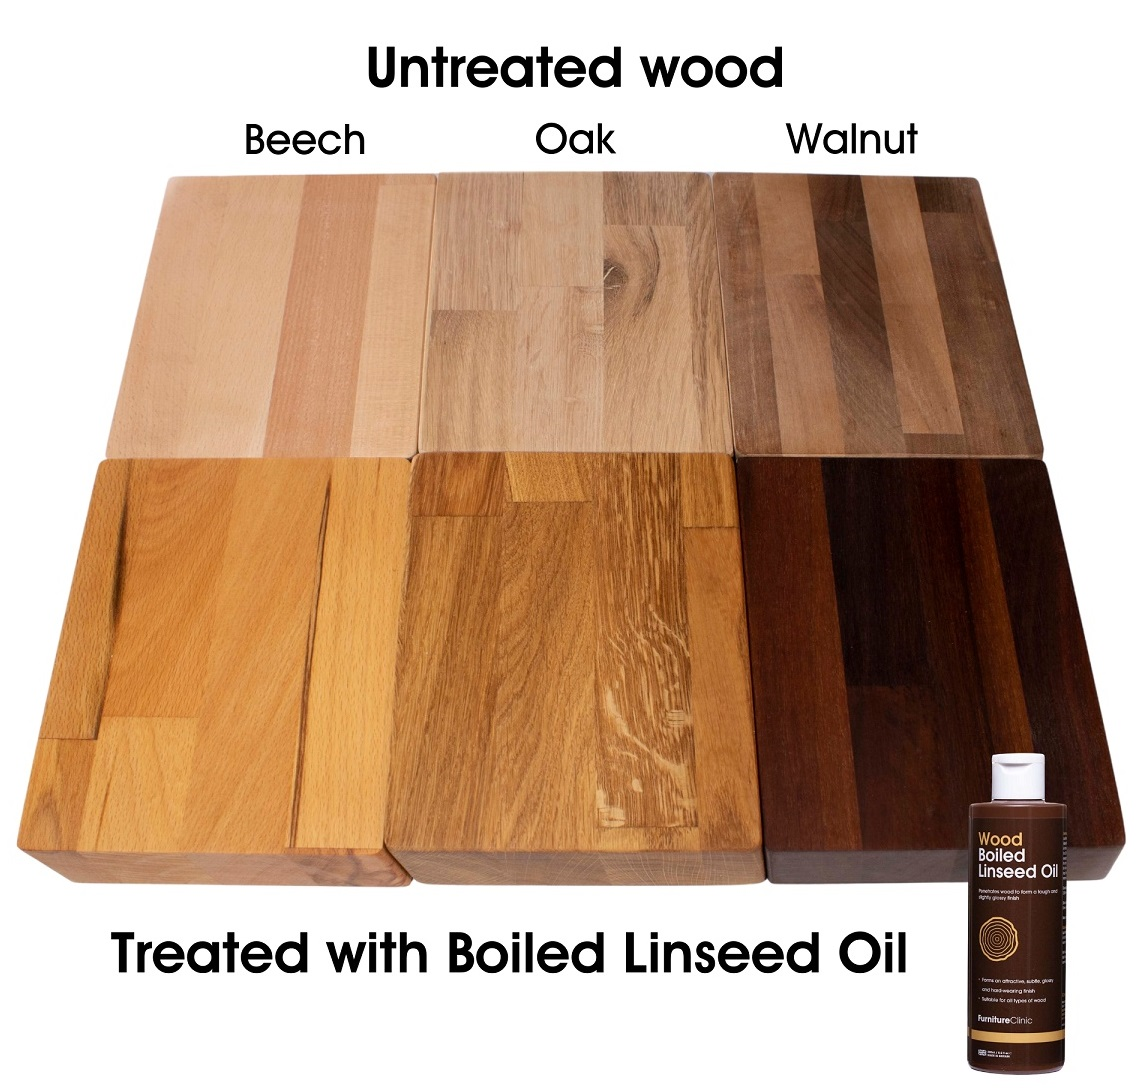 Boiled Linseed Oil Comparison